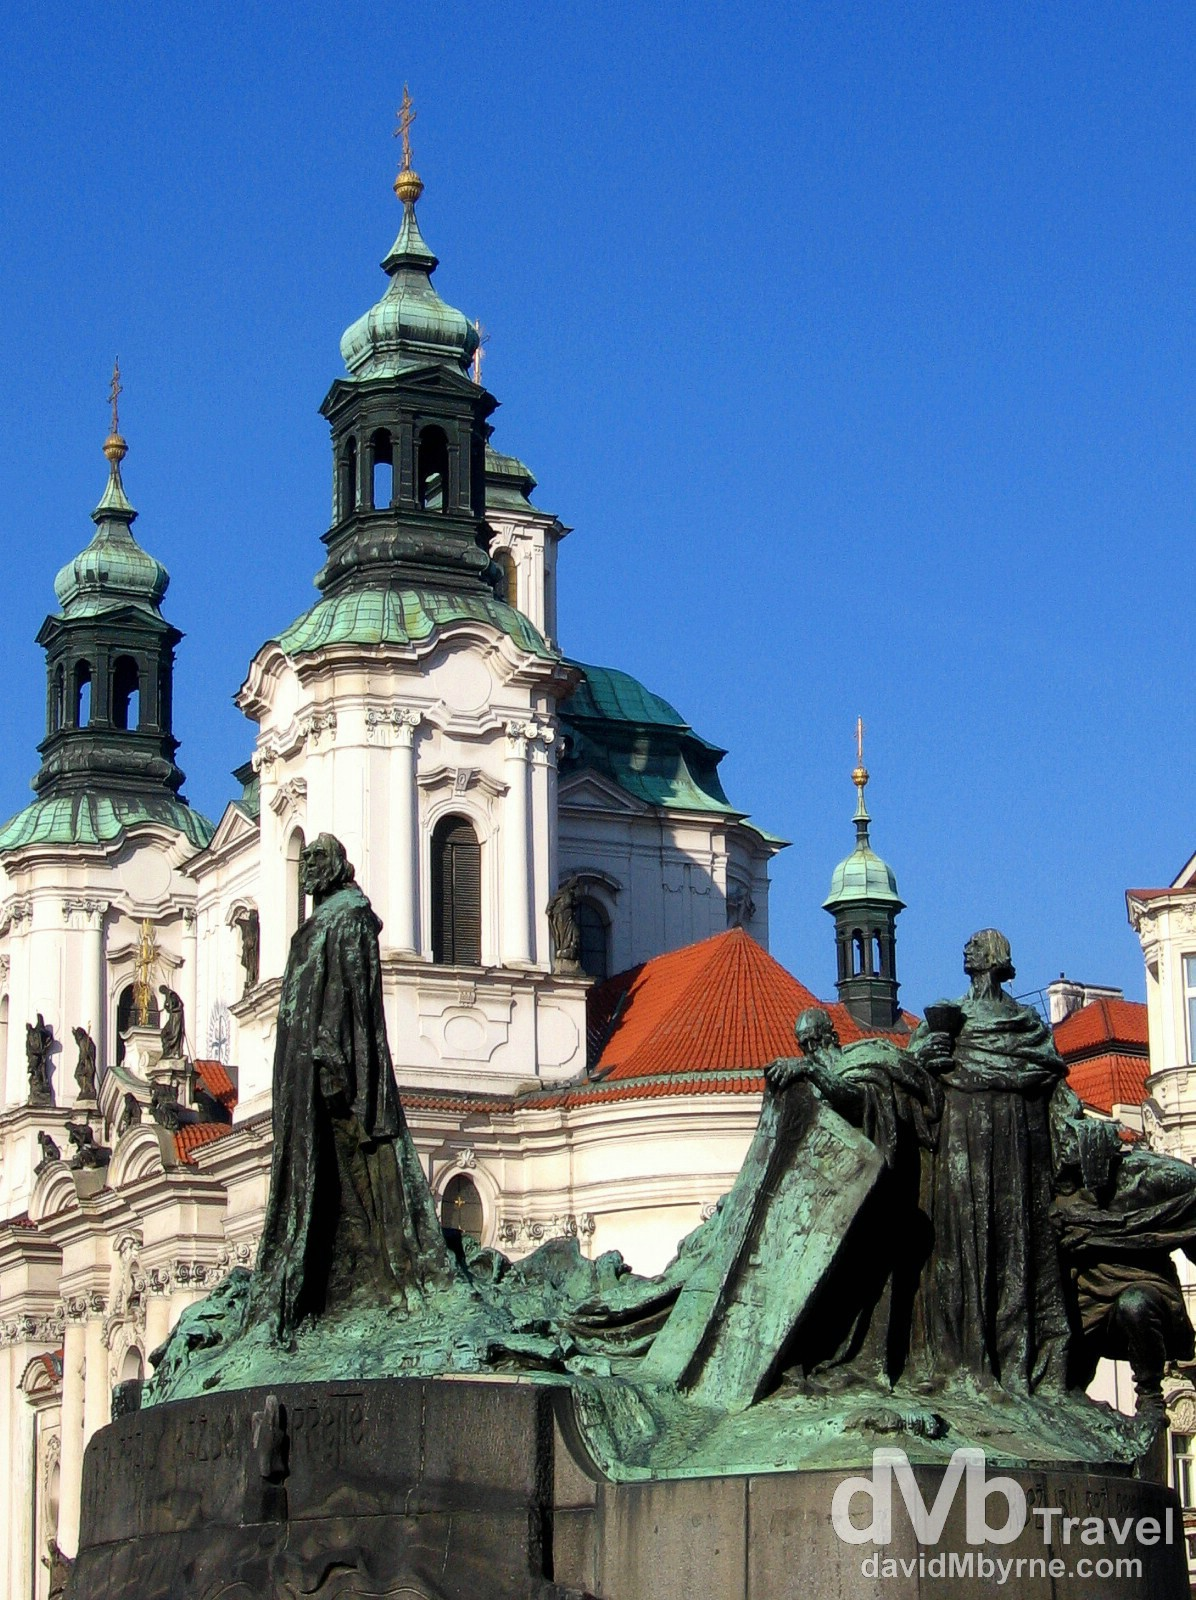 The Jan Hus Statue in the centre of the Old Town Square, Prague, Czech Republic. March 8th 2006